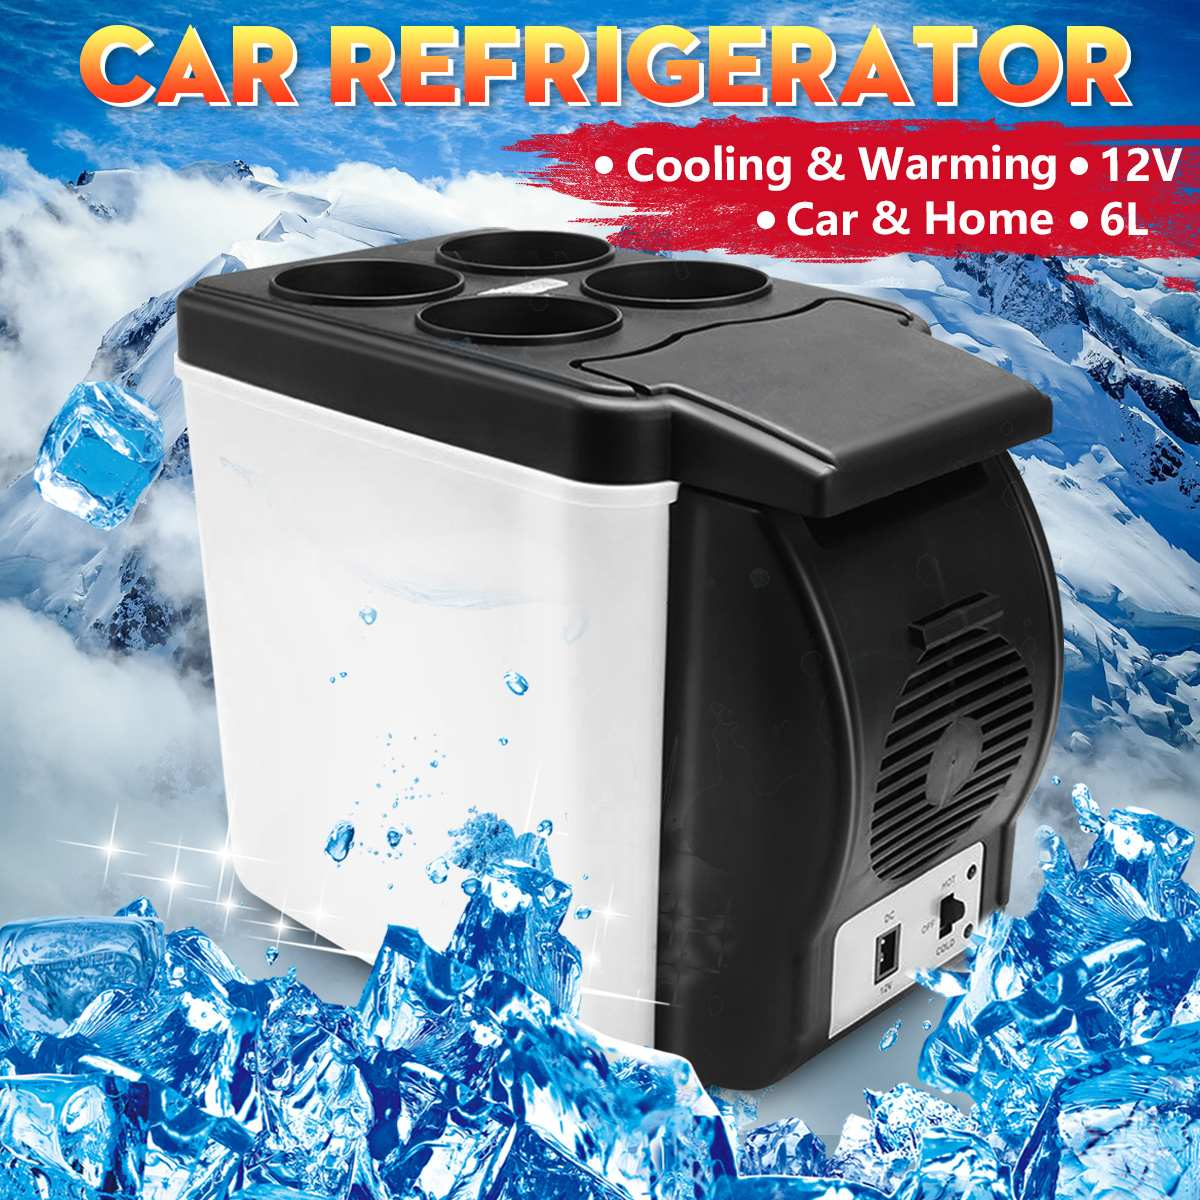 Car Mini Fridge 12V 6L Compact Car Refrigerator Electric Drink Cooler and Warmer For Traveling Camping